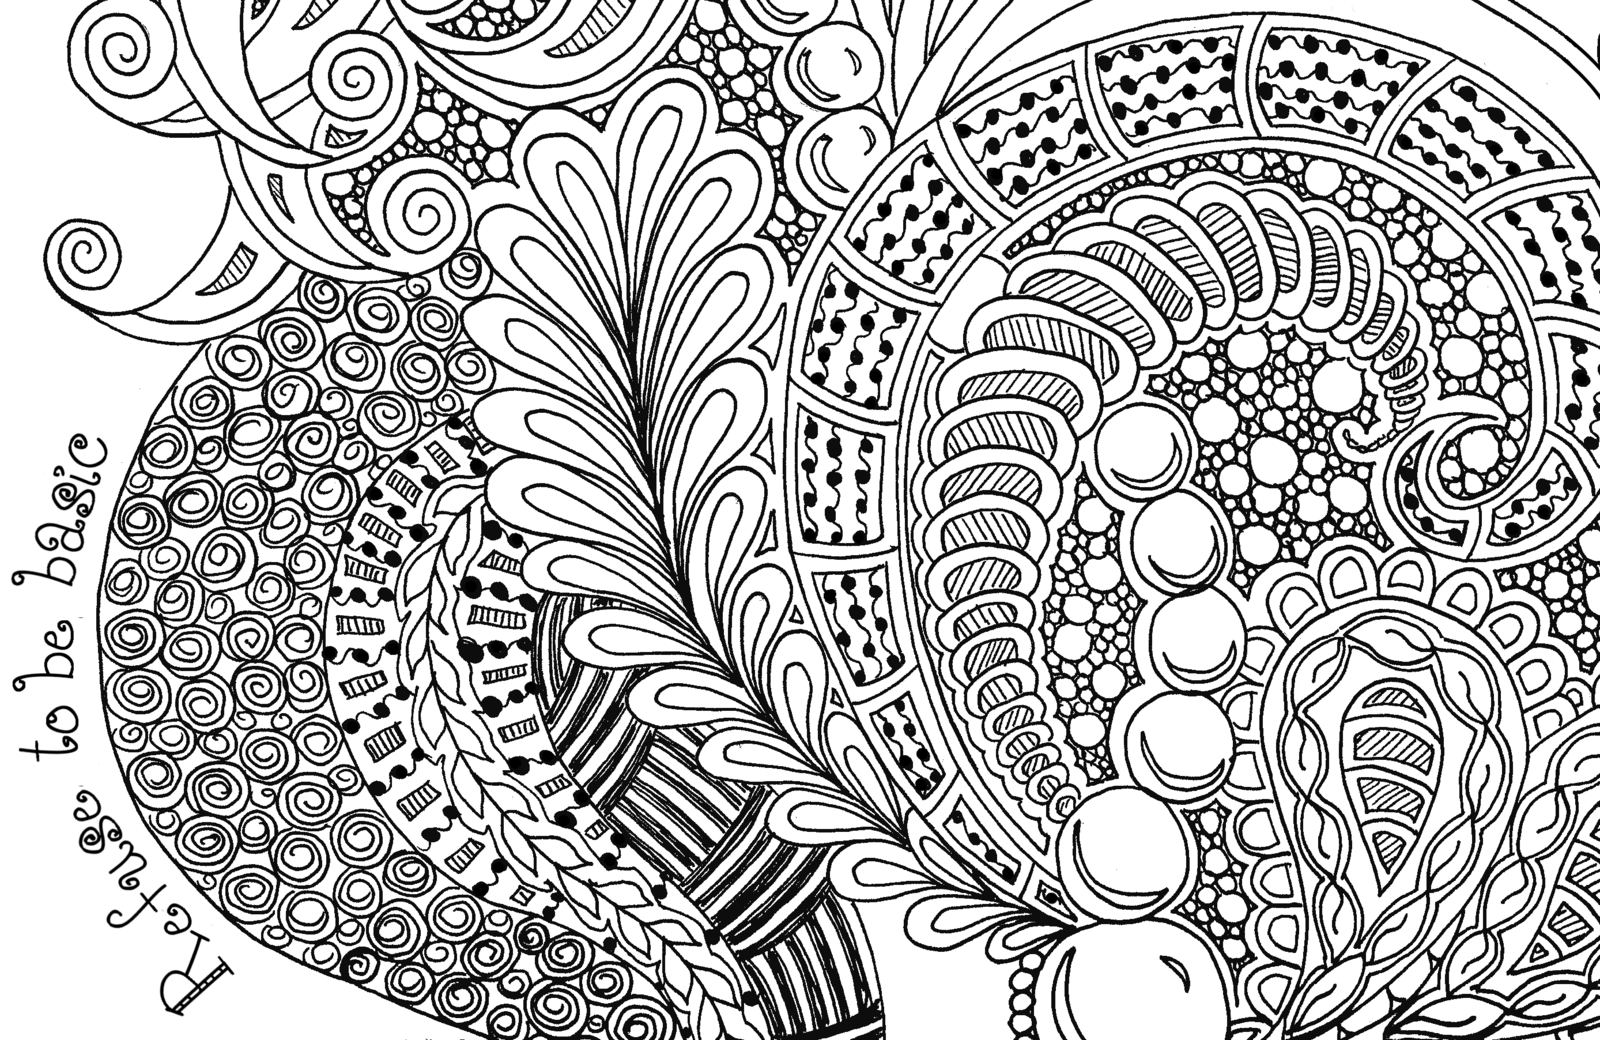 Printable Zentangle Coloring Pages Coloring Home Free Printable Zentangle Coloring Pages